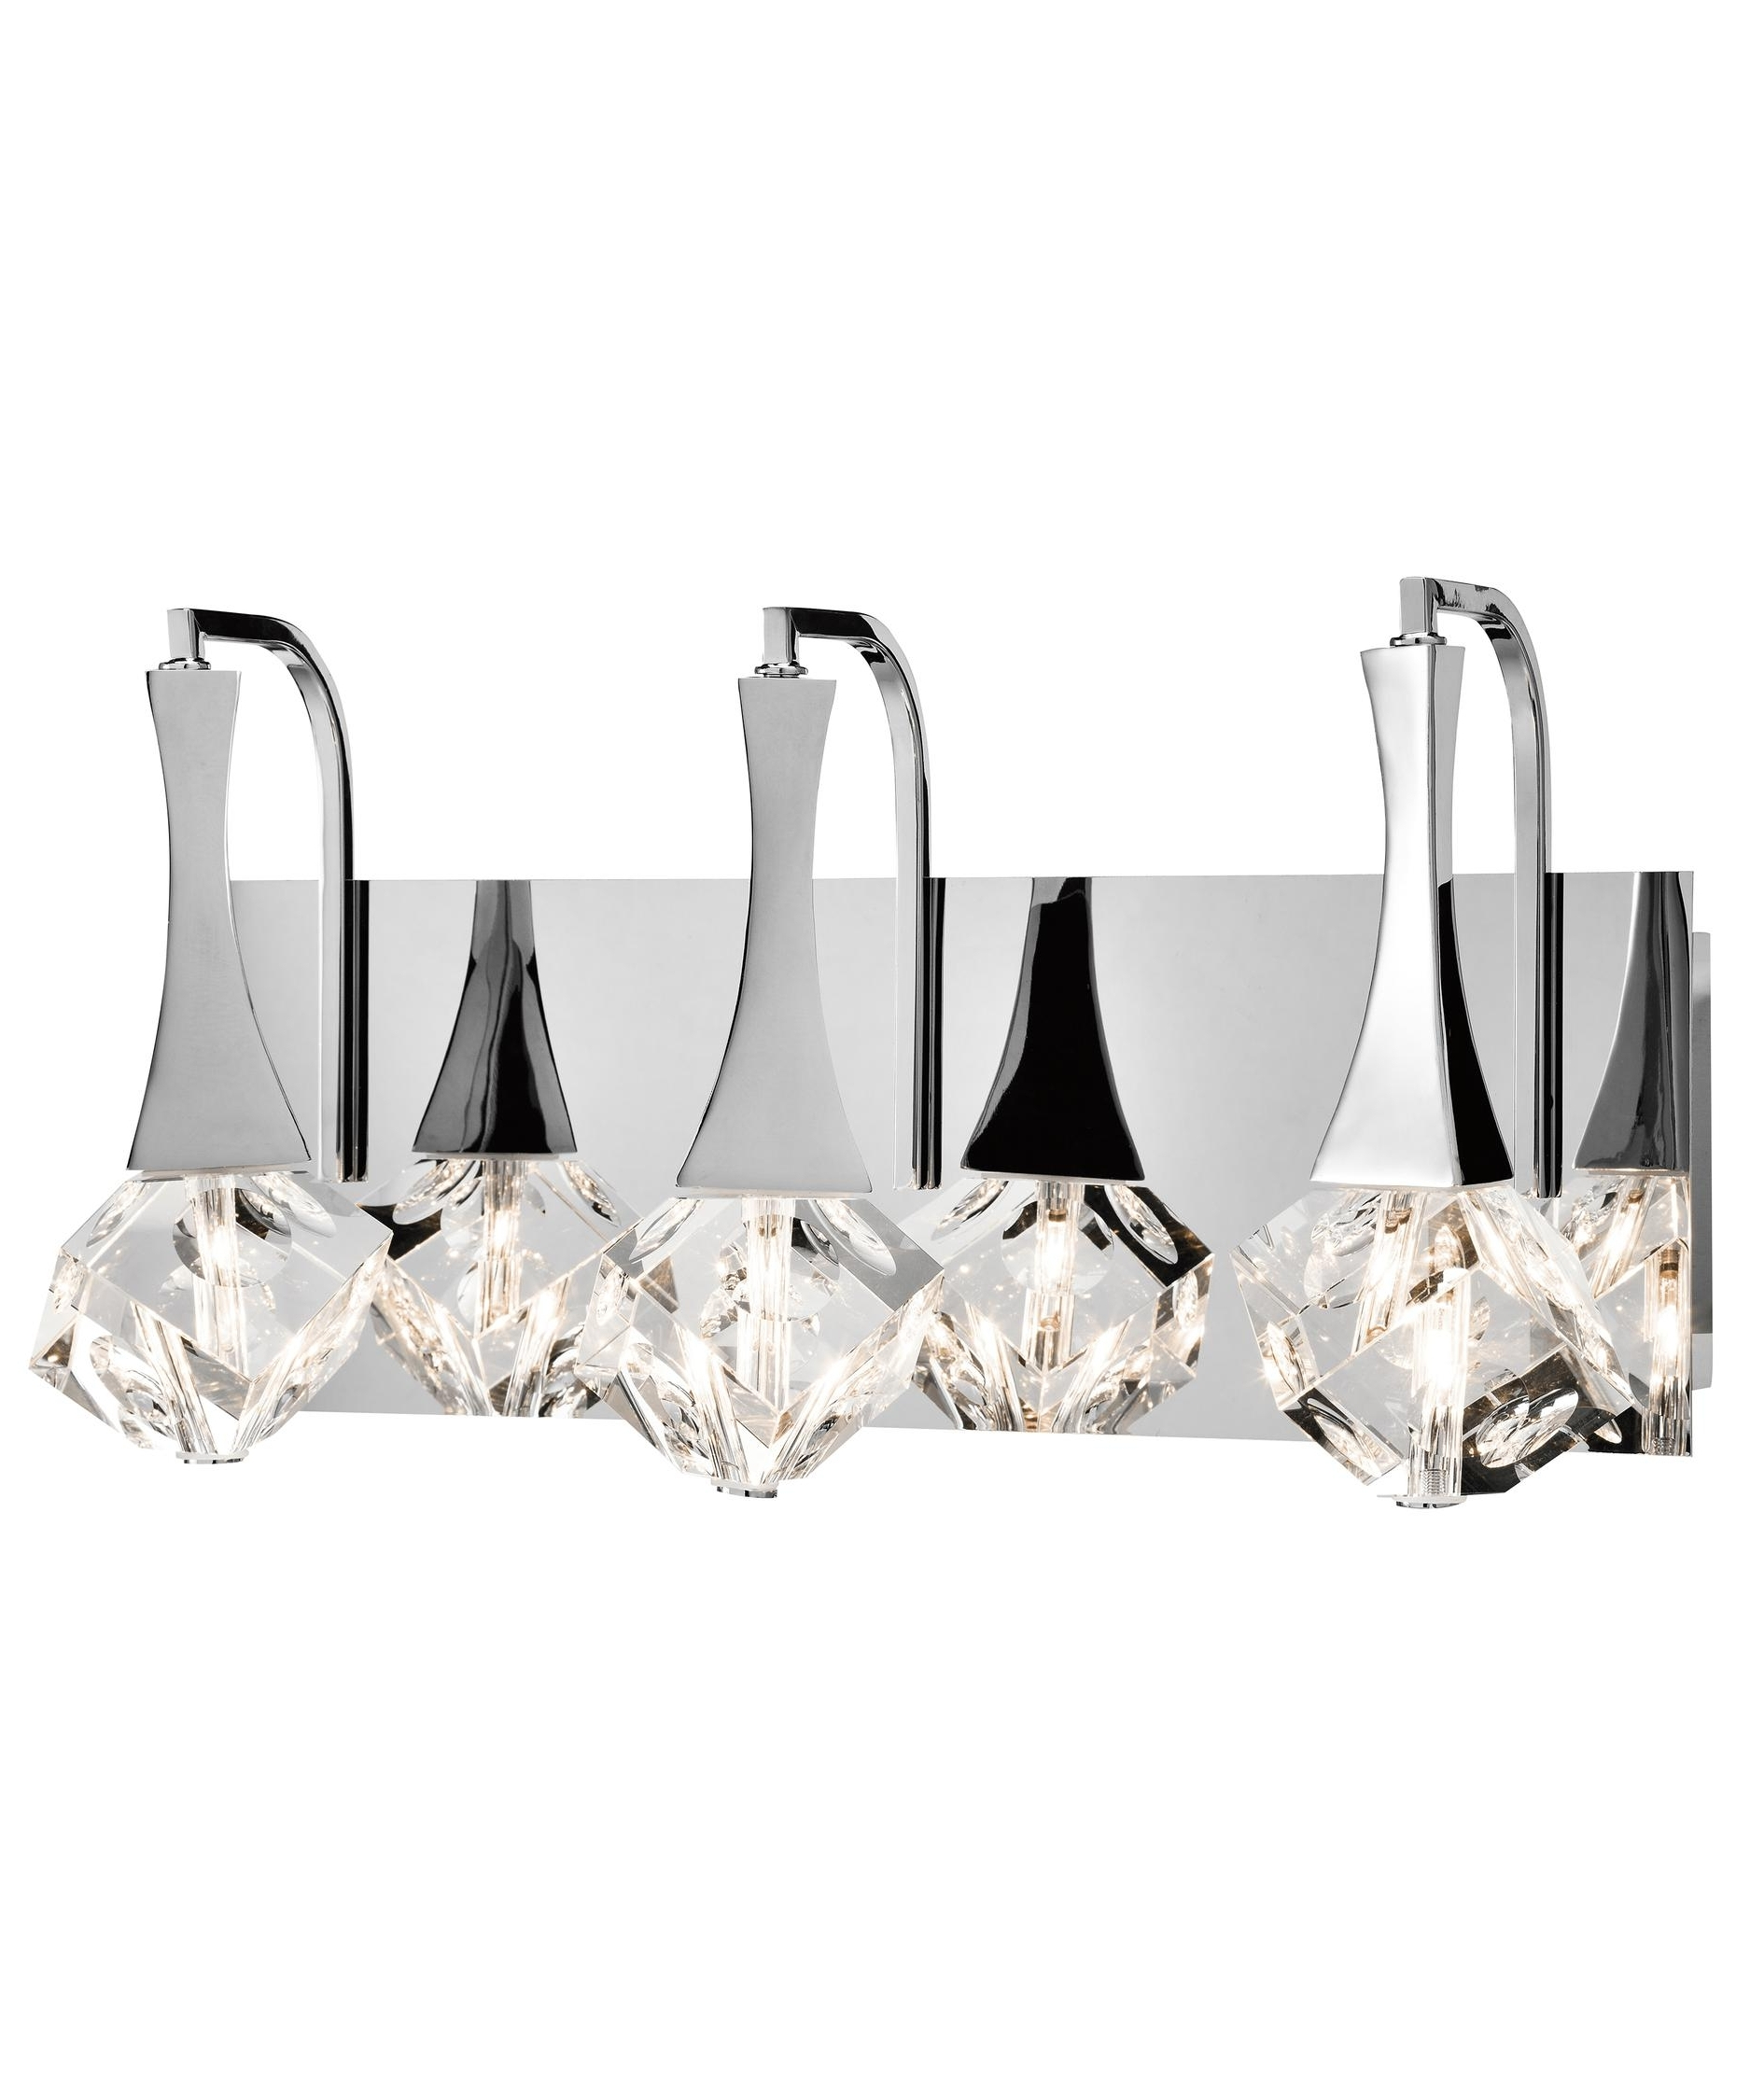 Chandelier Bathroom Vanity Lighting For Favorite Add A Little Sparkle To Your Home Gross Electric Mattresses Dining (View 7 of 20)